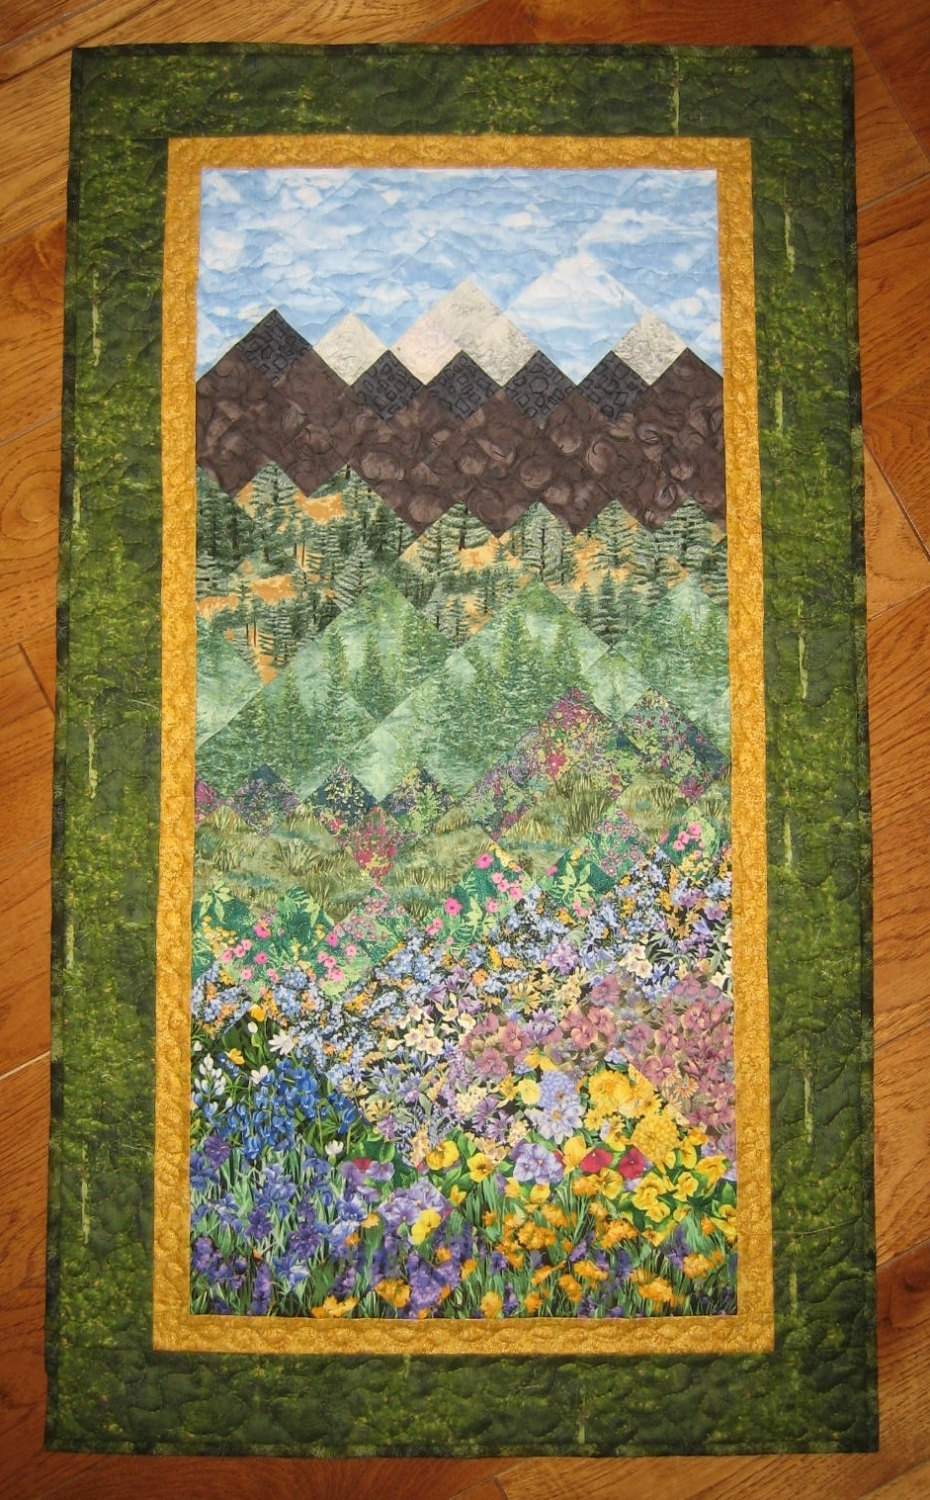 Art Quilt Fabric Wallhanging Pine Trees Mountain Flowers Handmade Pertaining To Most Recently Released Quilt Fabric Wall Art (View 4 of 15)